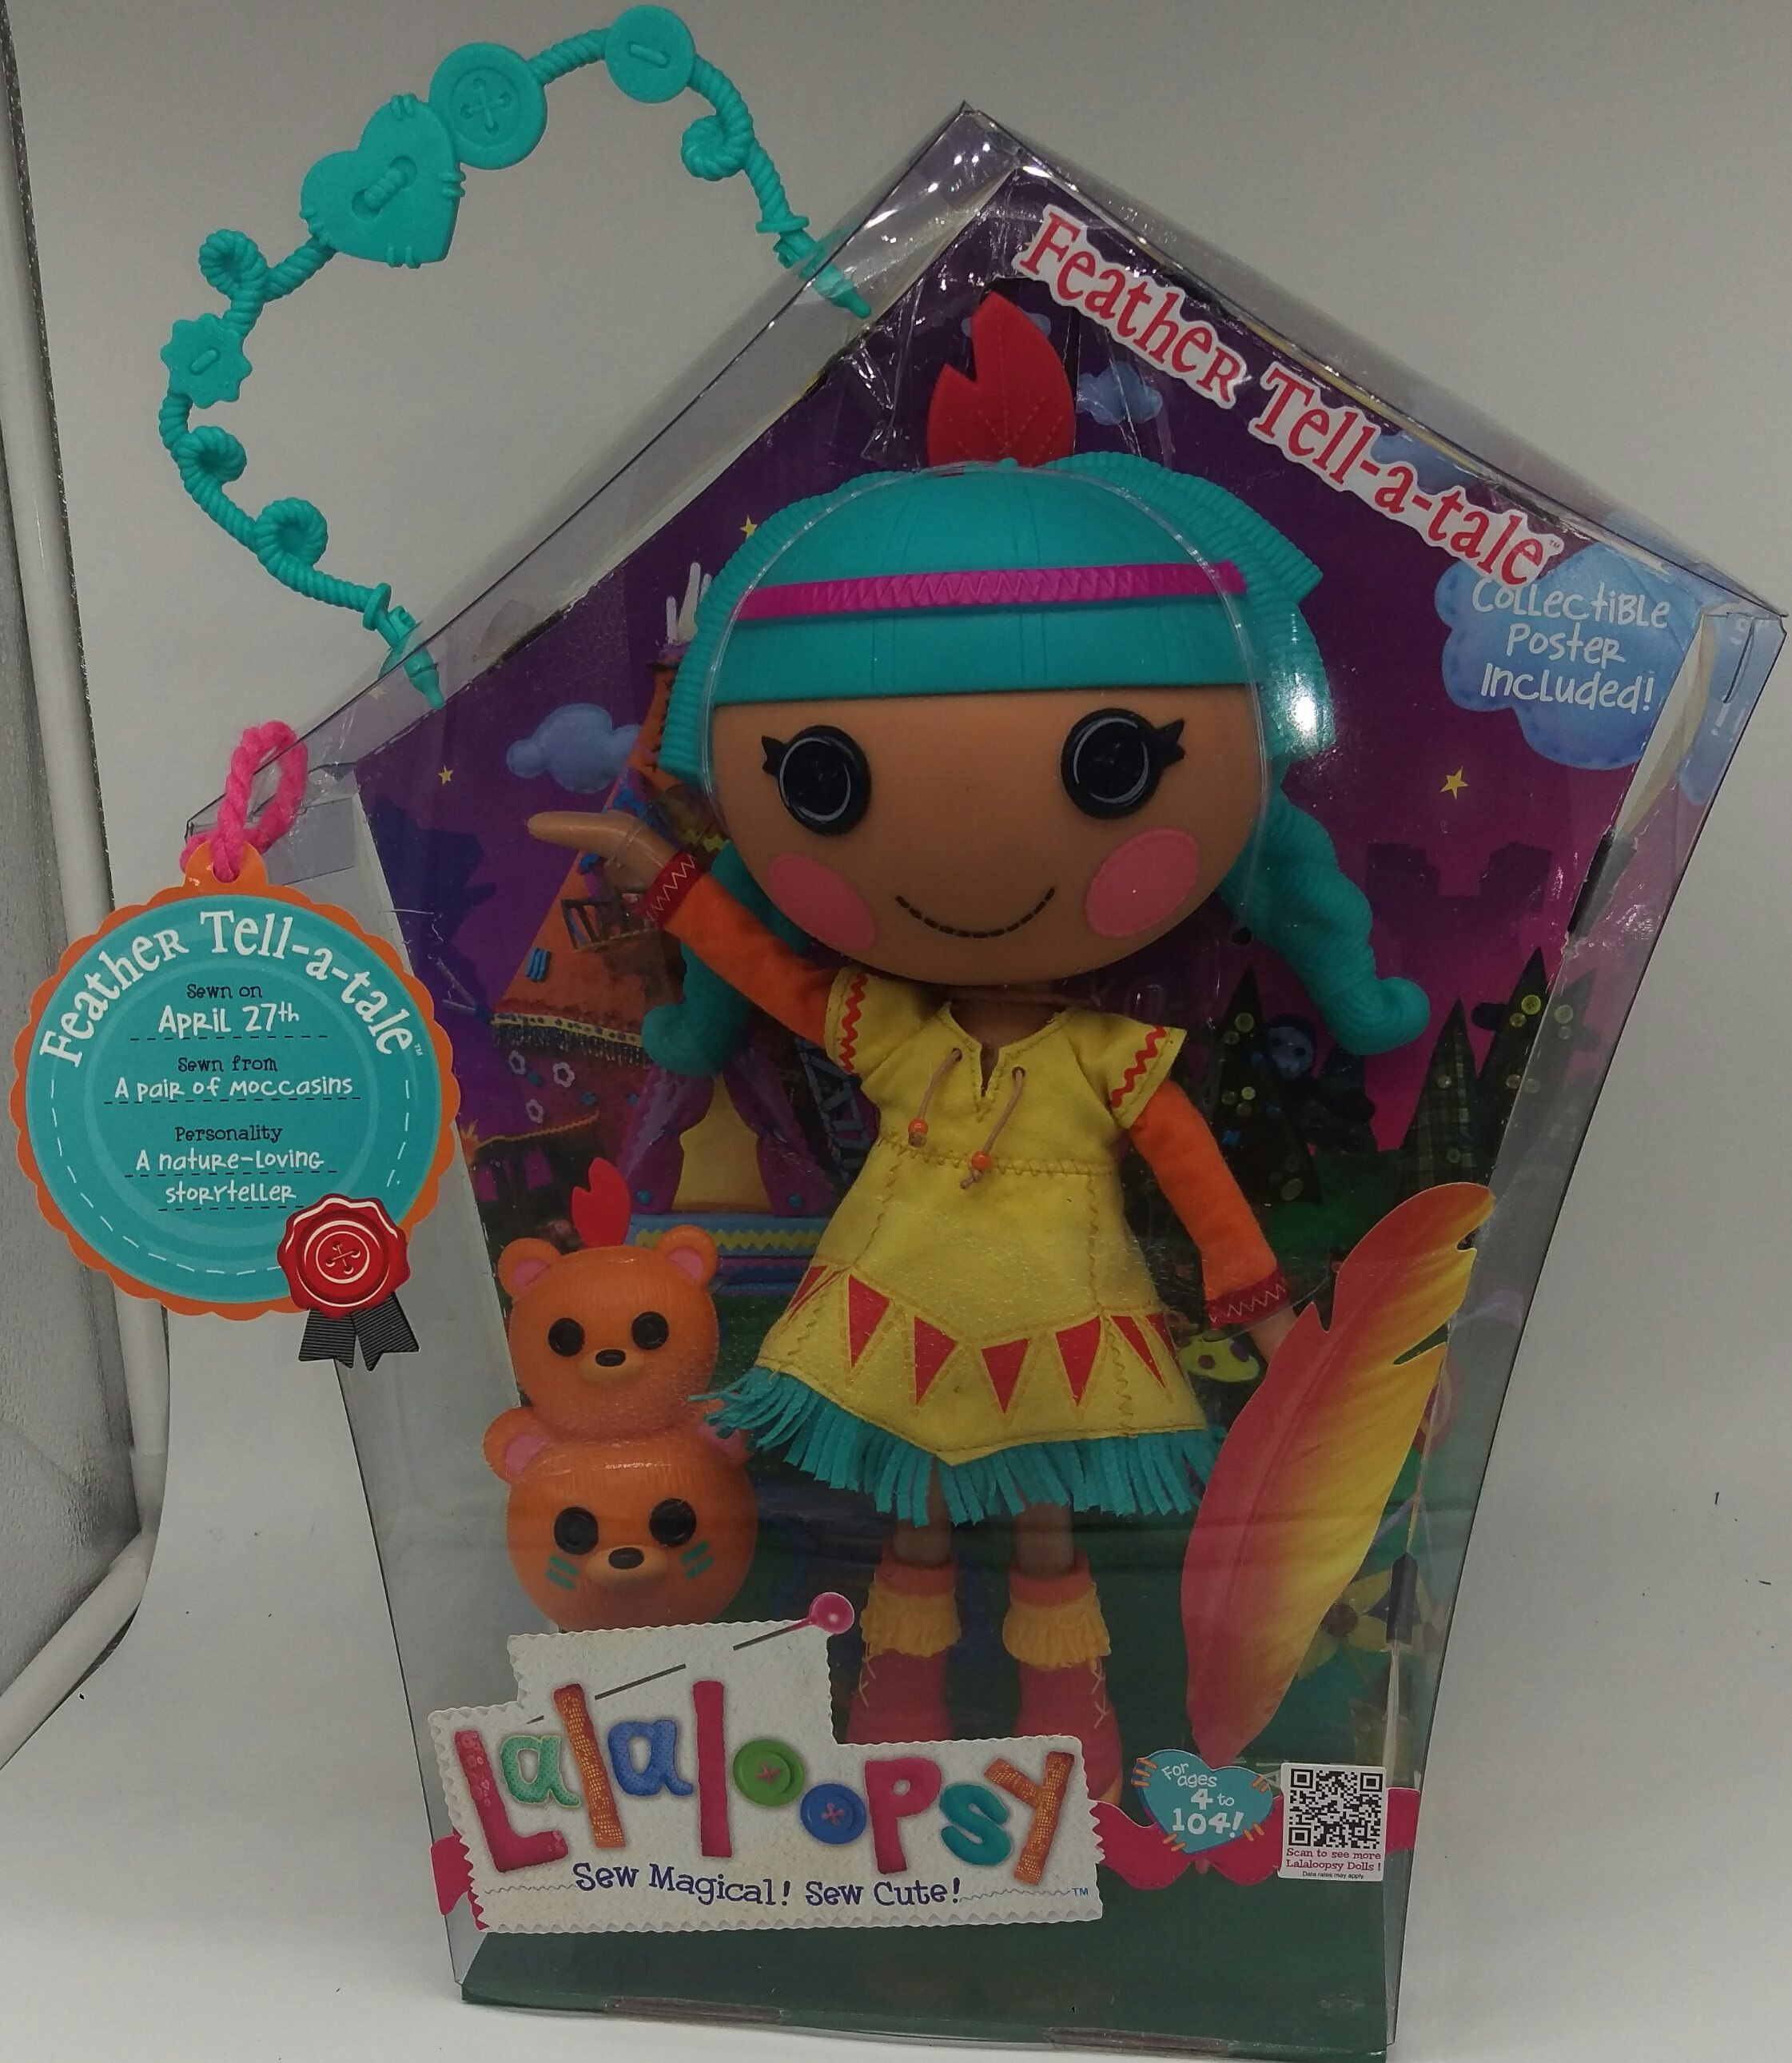 MGA Entertainment 512400E5C - Lalaloopsy Puppe Feather Tell-a-Tale